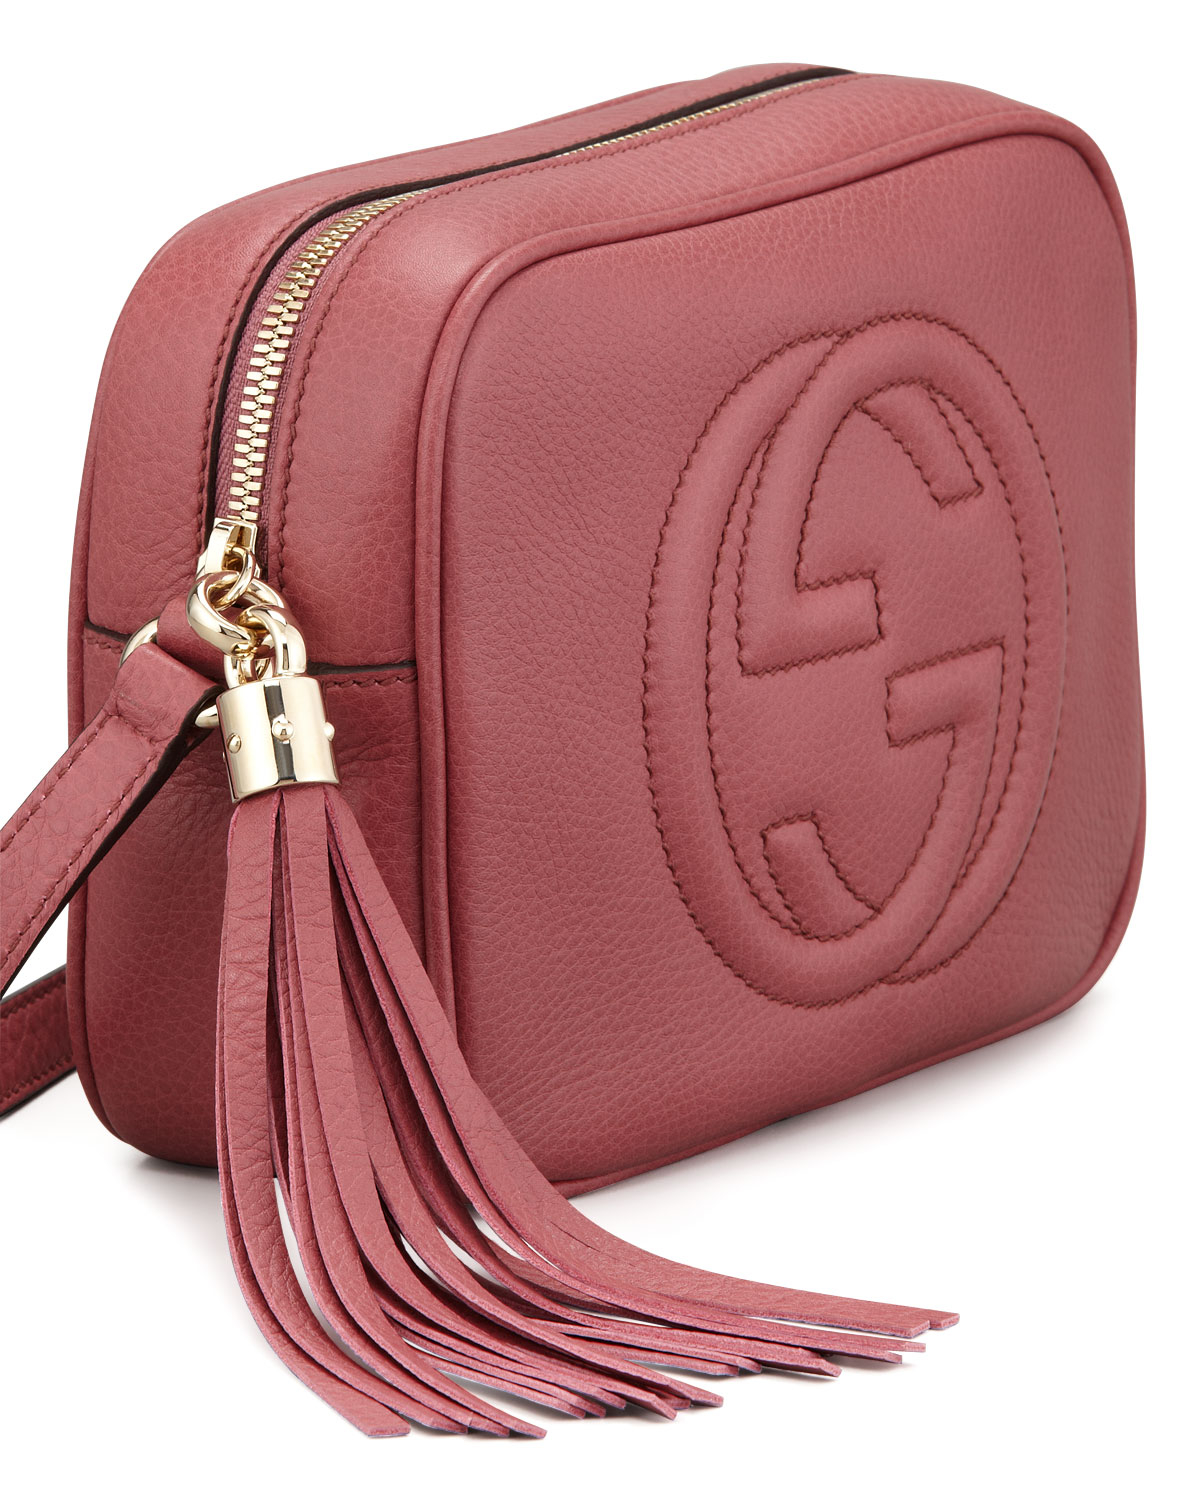 72d53a5ef75 Gallery. Previously sold at  Bergdorf Goodman · Women s Gucci Soho Bag